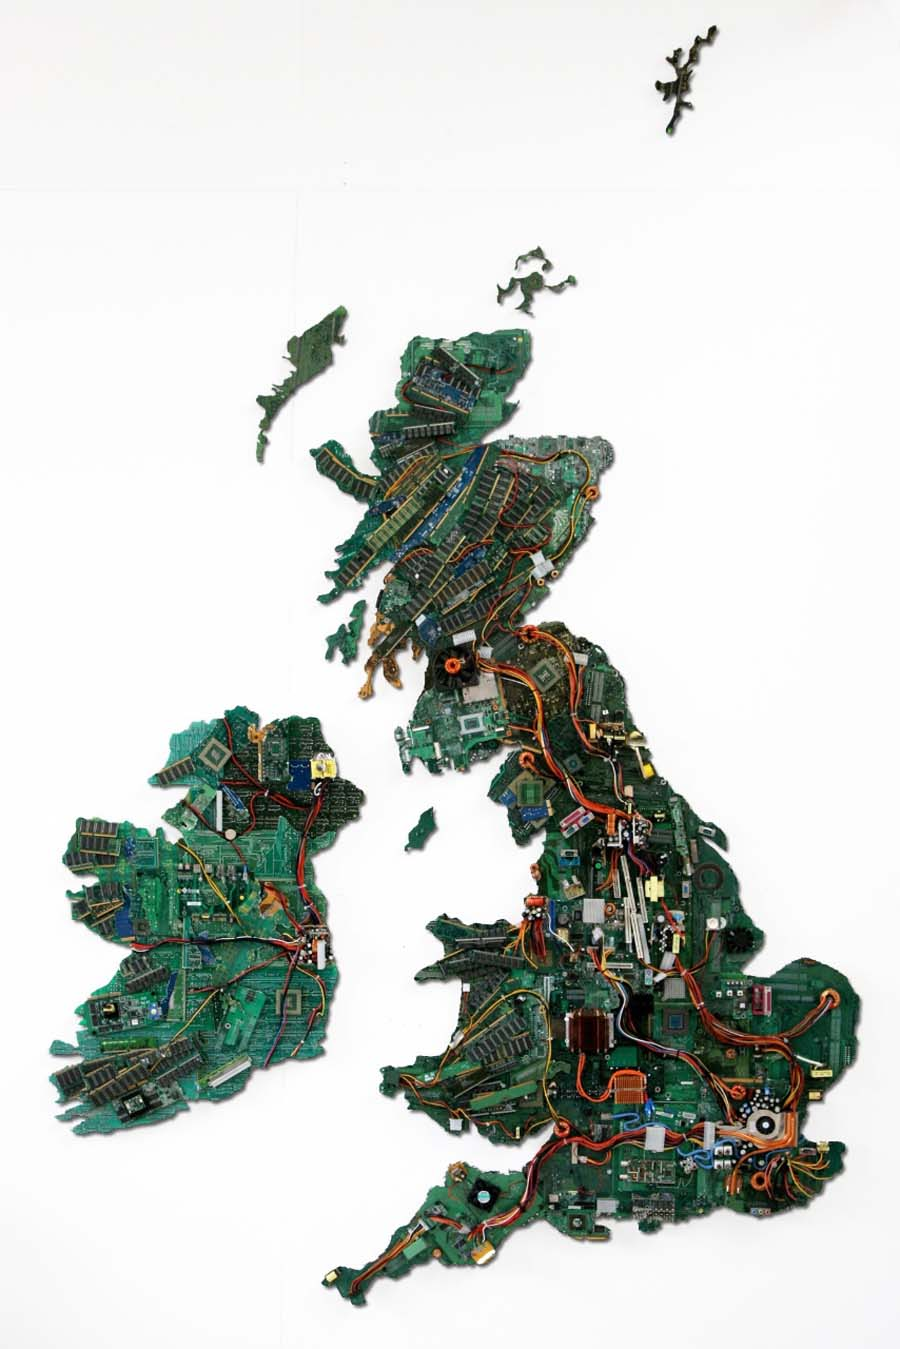 a map of England made of recycled computer parts